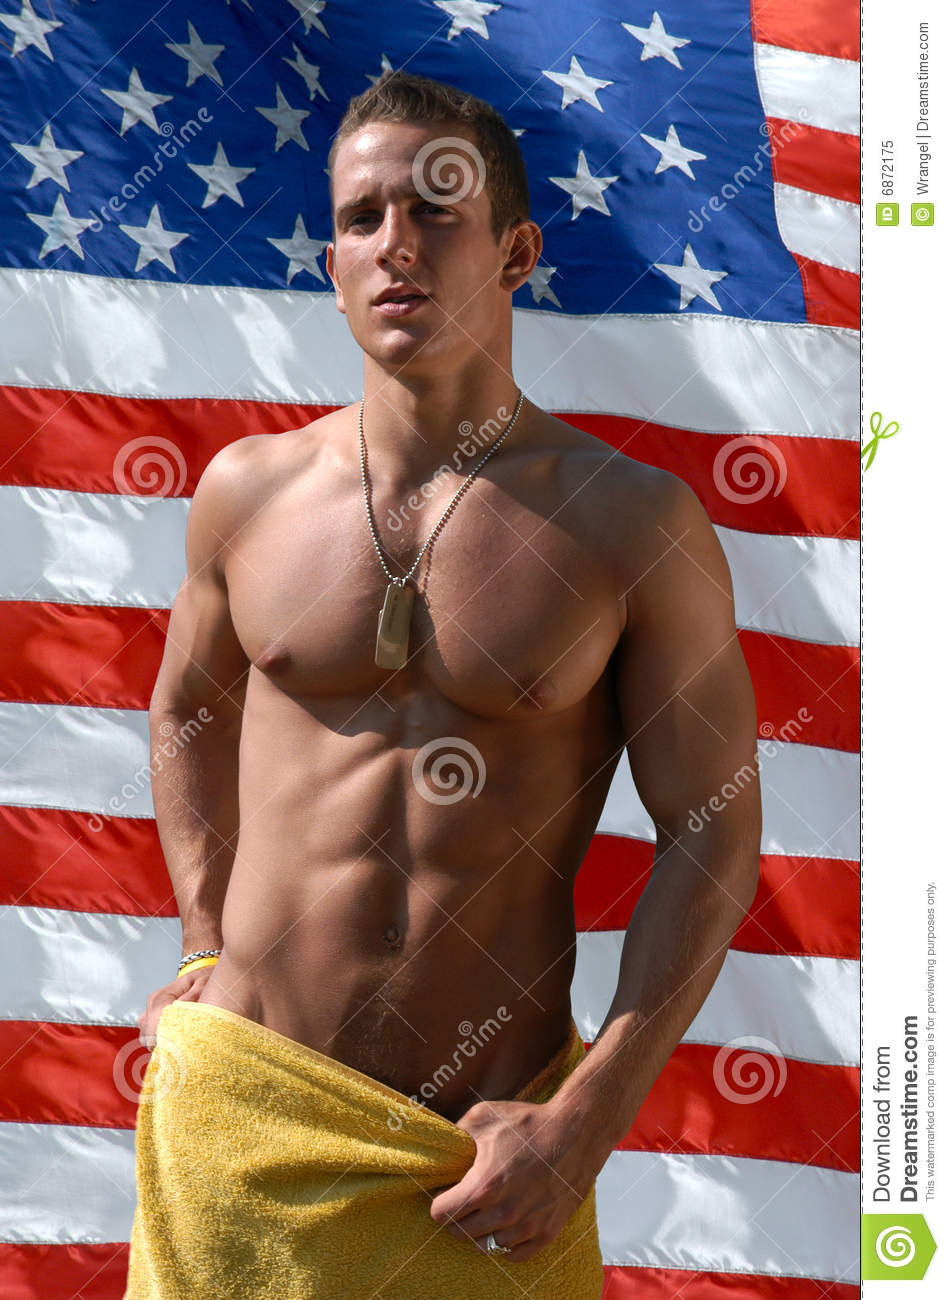 Man Wrapper with Towel with US Flag Behind